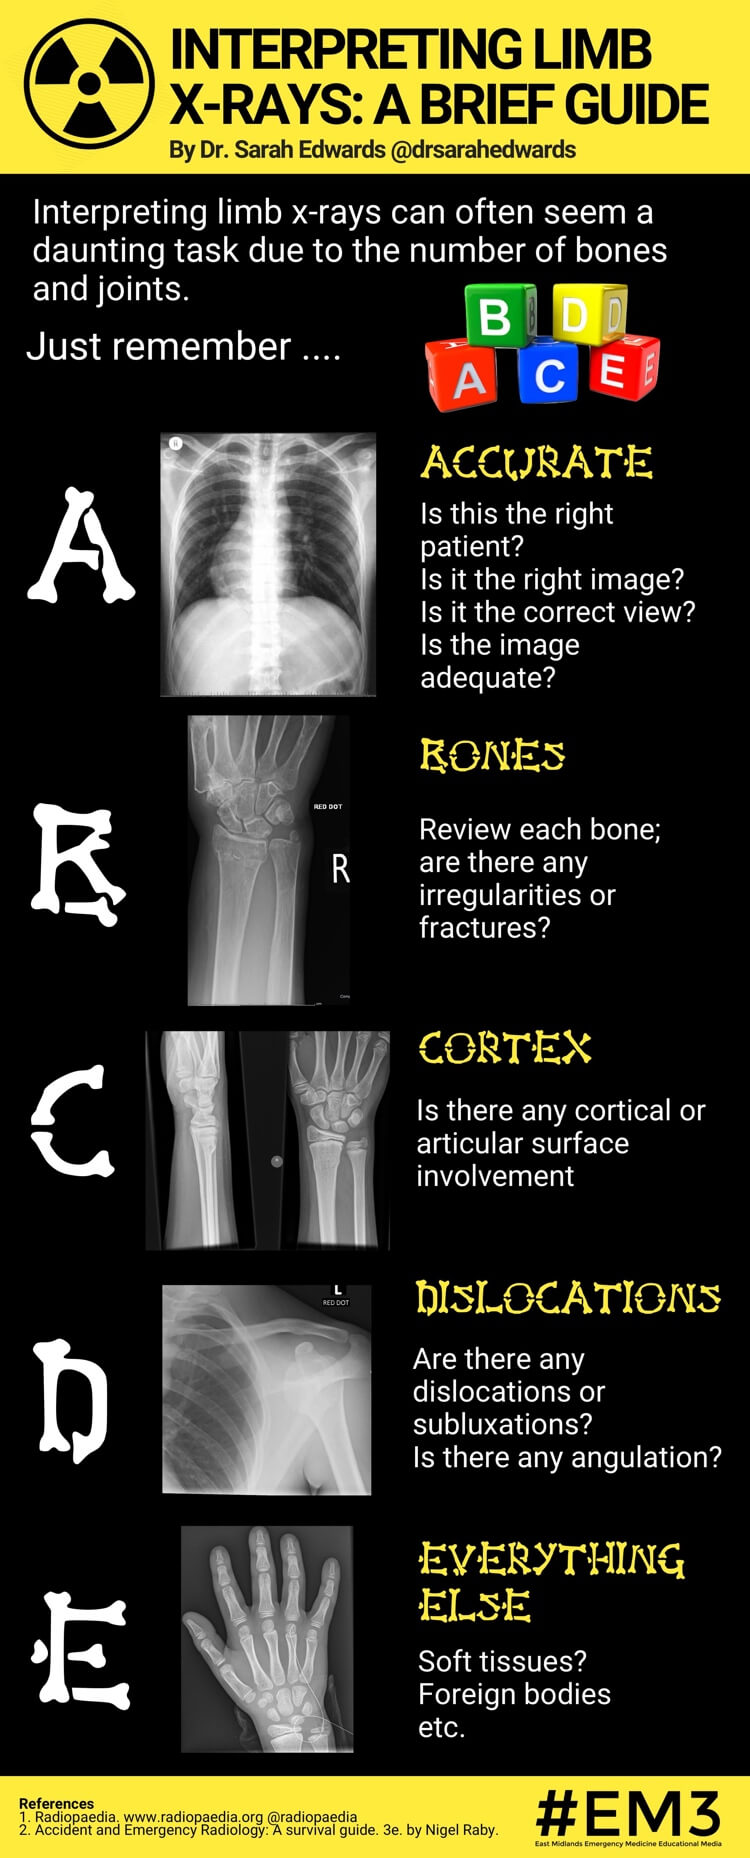 Interpreting Limb X-Rays v.1 (thumbnail).jpg